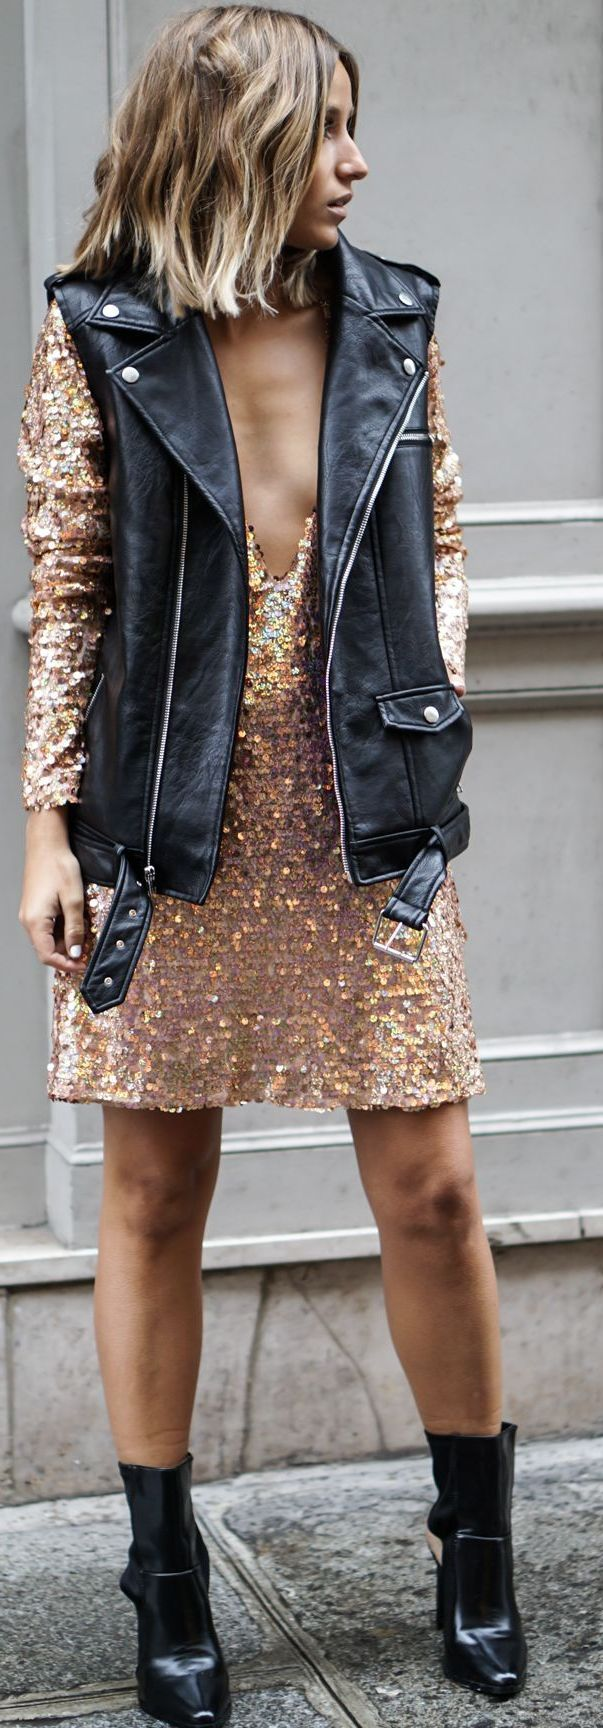 2018 Sequined Trend For Women (7)